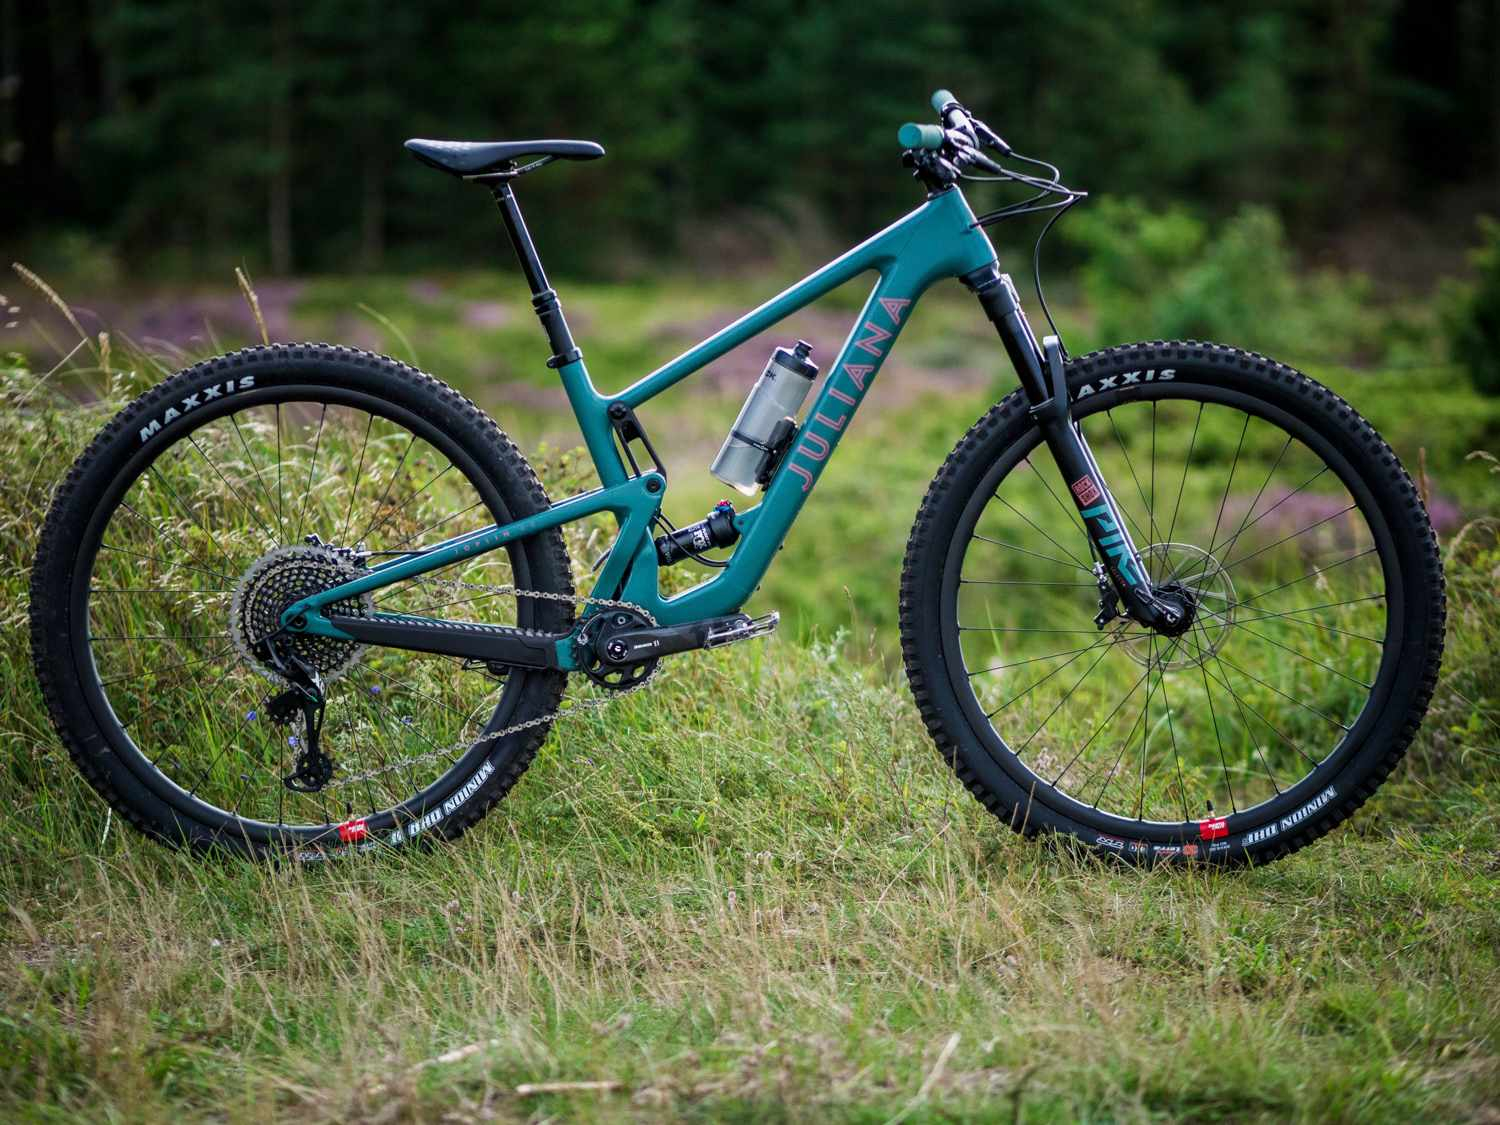 juliana joplin stolen robbed singletrack hebden bridge